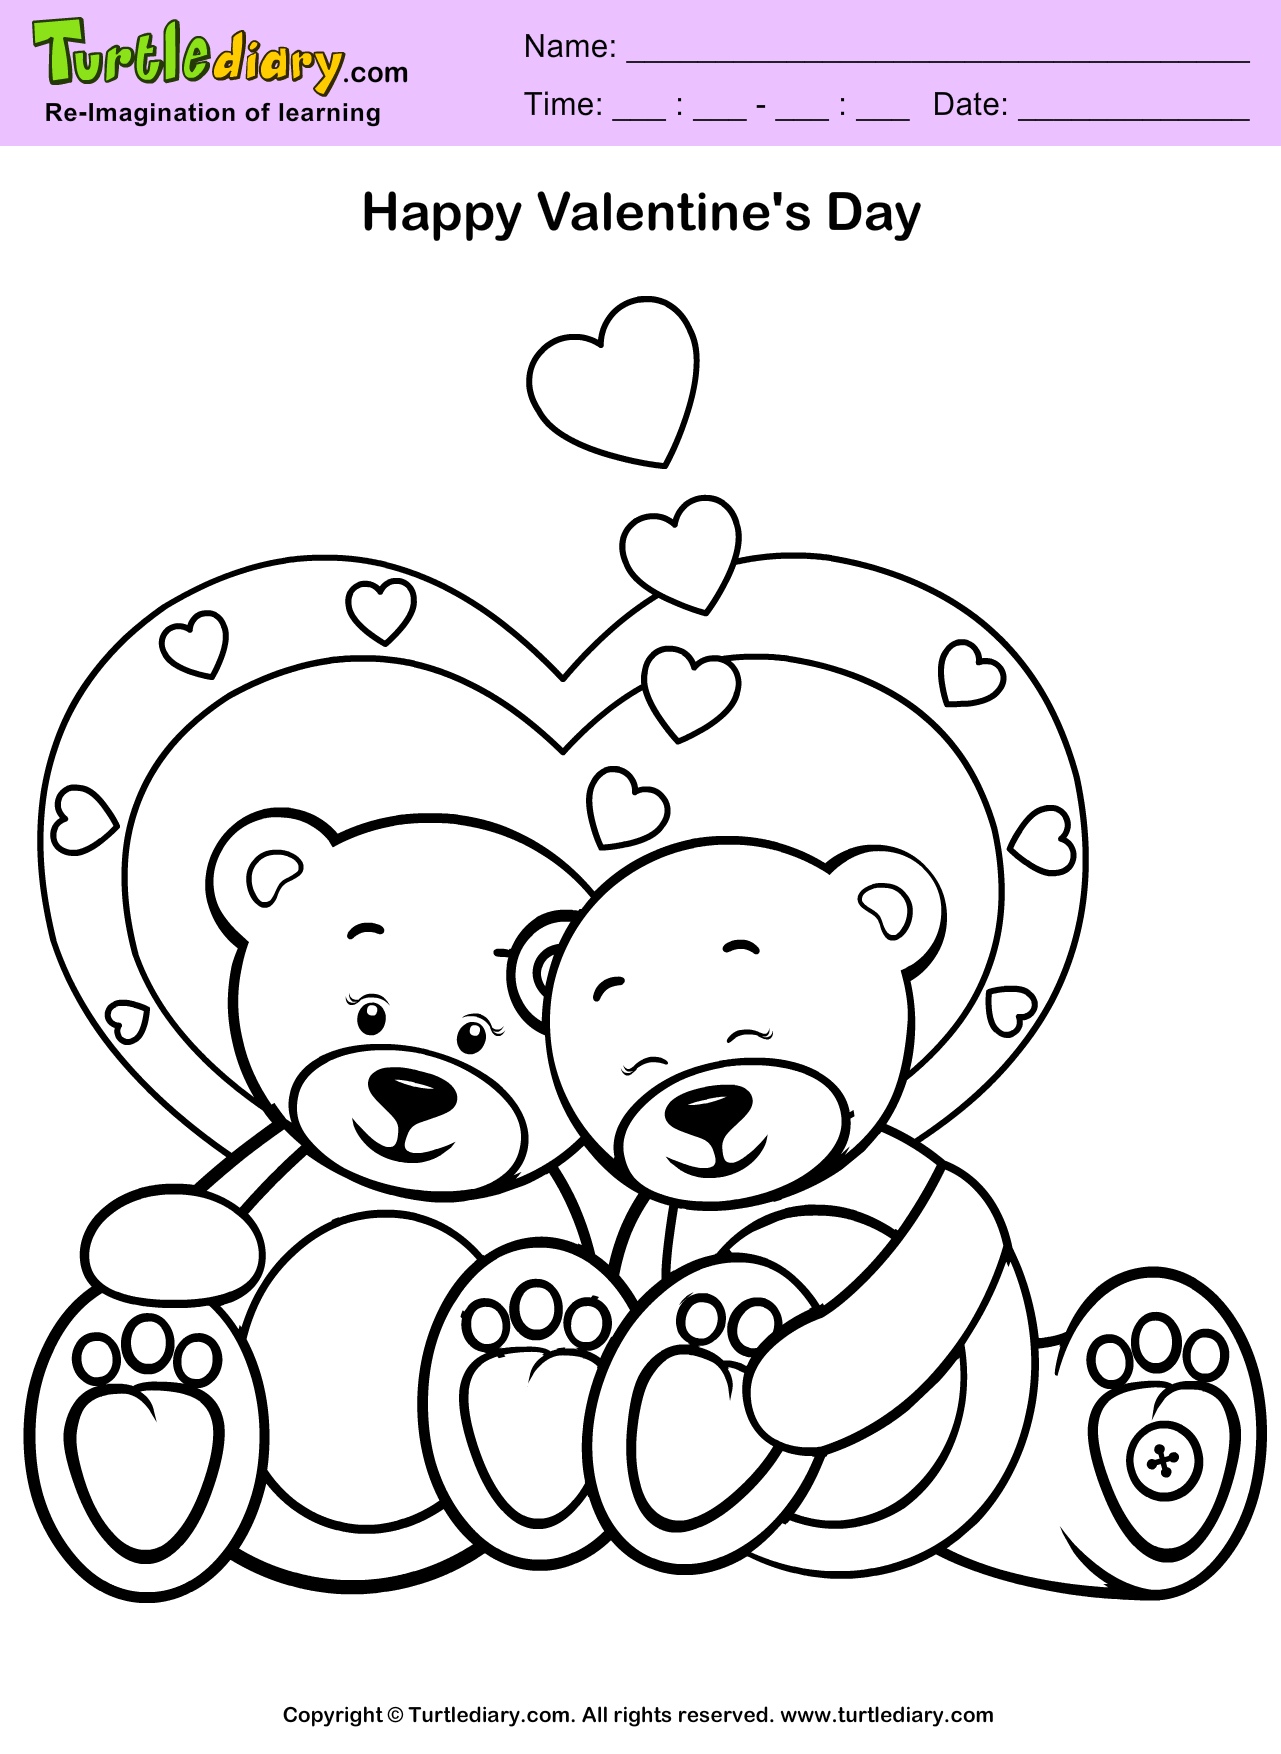 Free Printable Teddy Bear Coloring Pages For Kids | 1754x1281